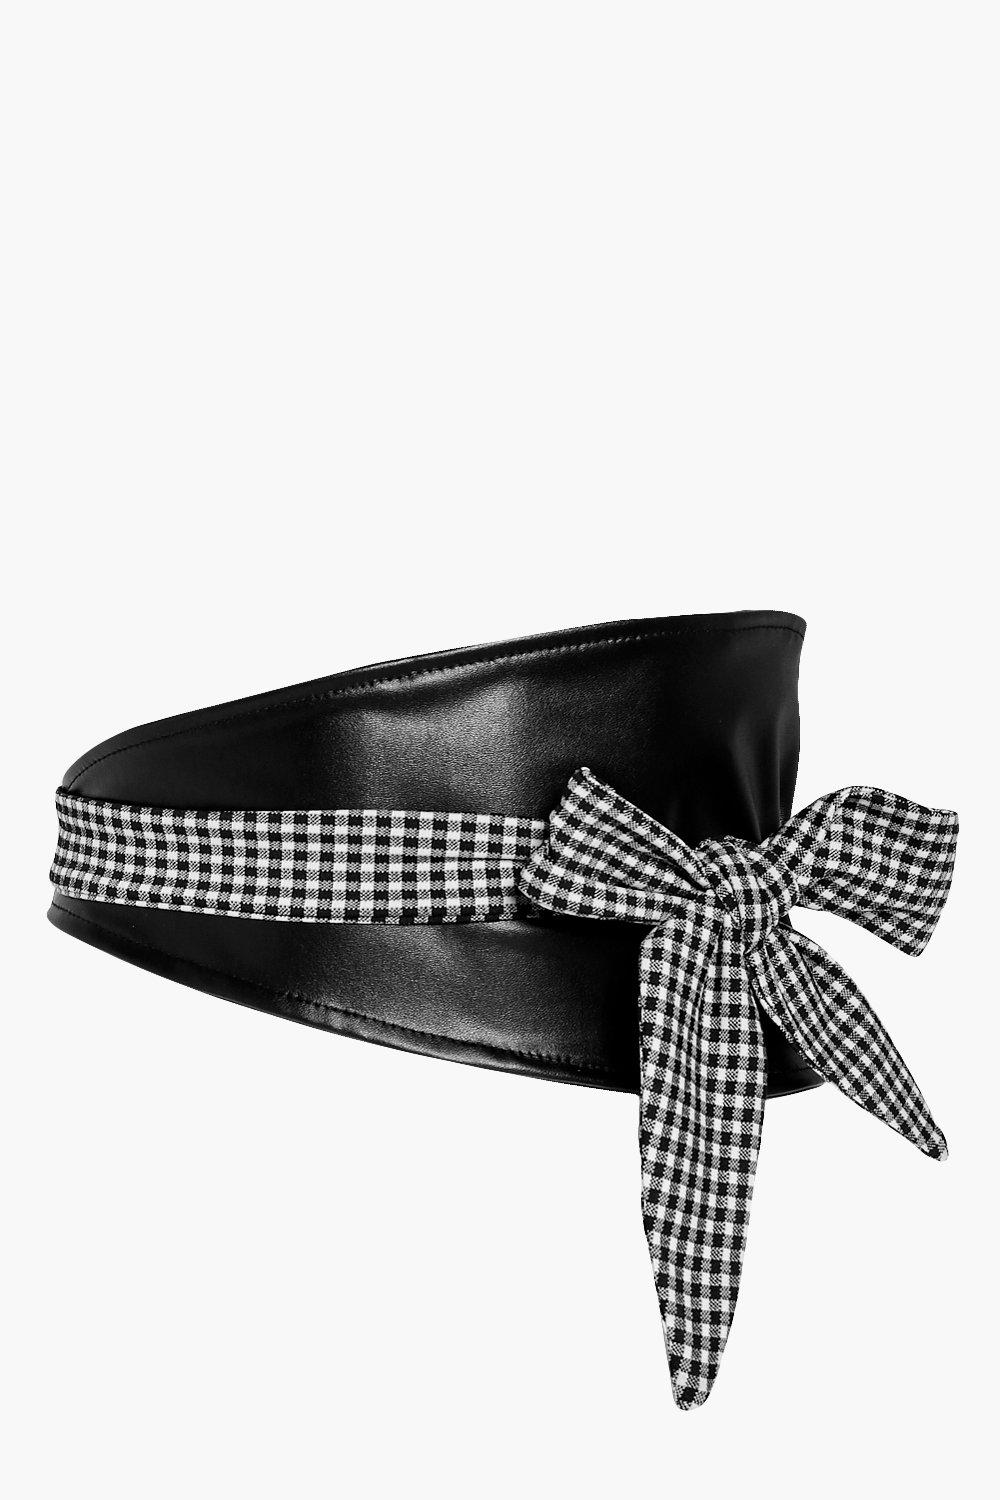 PU Waist Belt With Gingham Tie - black - Esme PU W